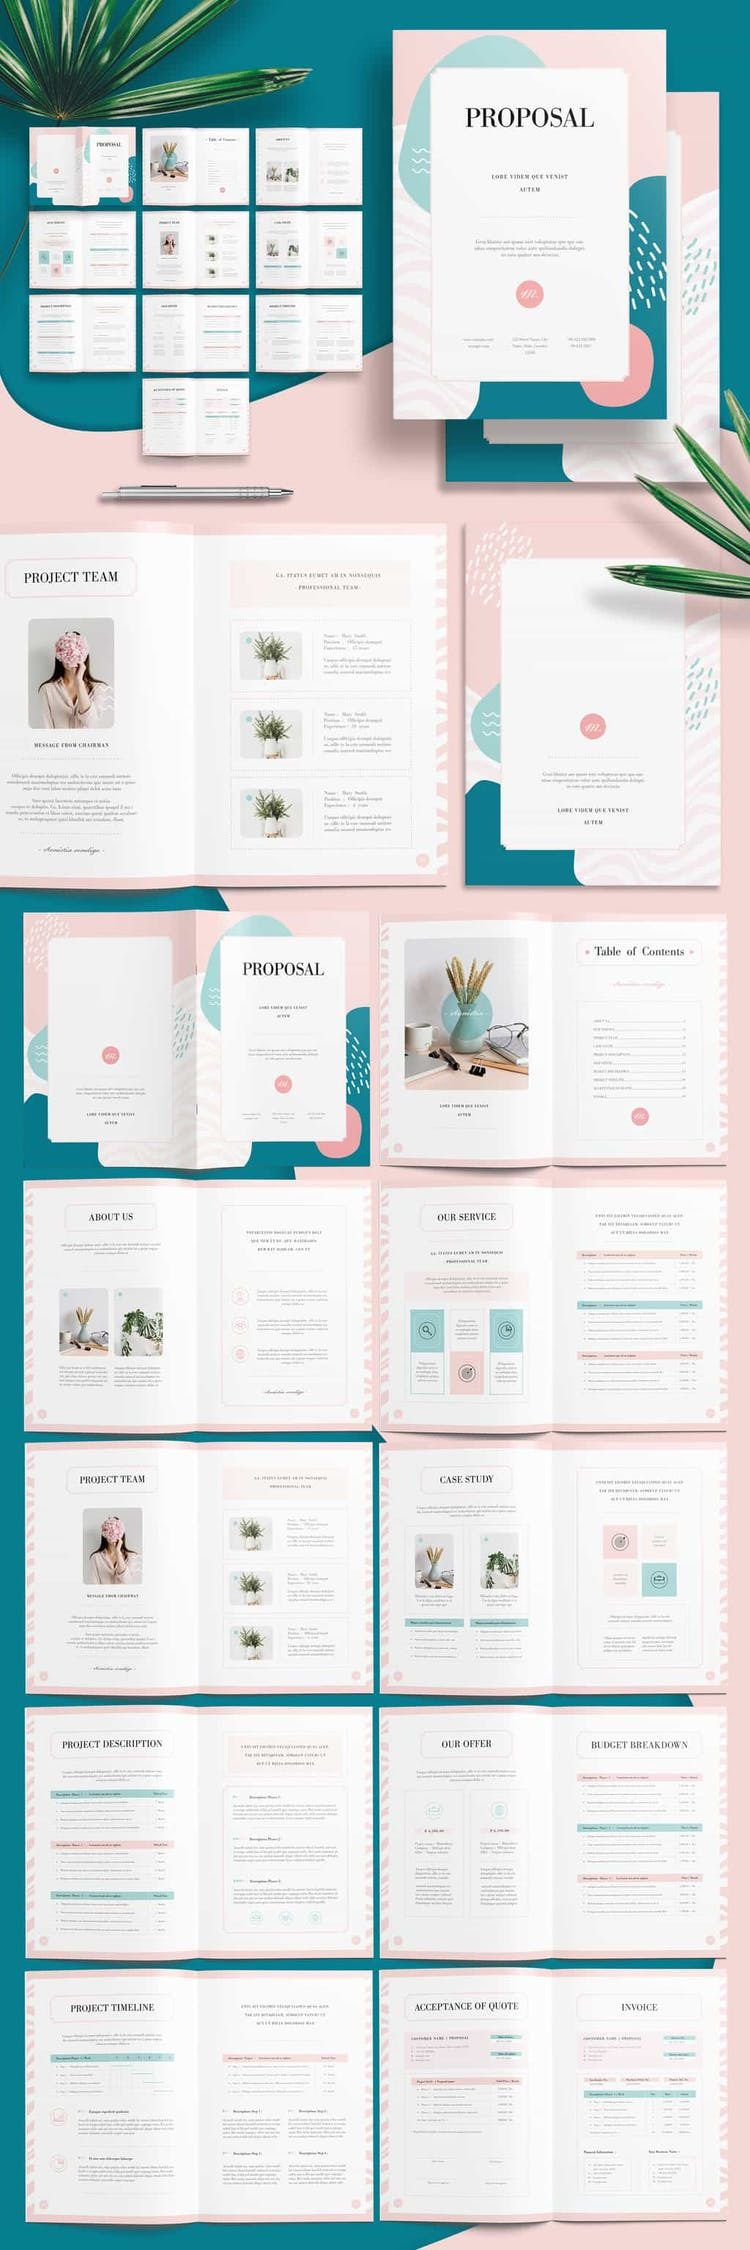 006 Wonderful Annual Report Design Template Example  Templates Word Timeles Free Download InFull